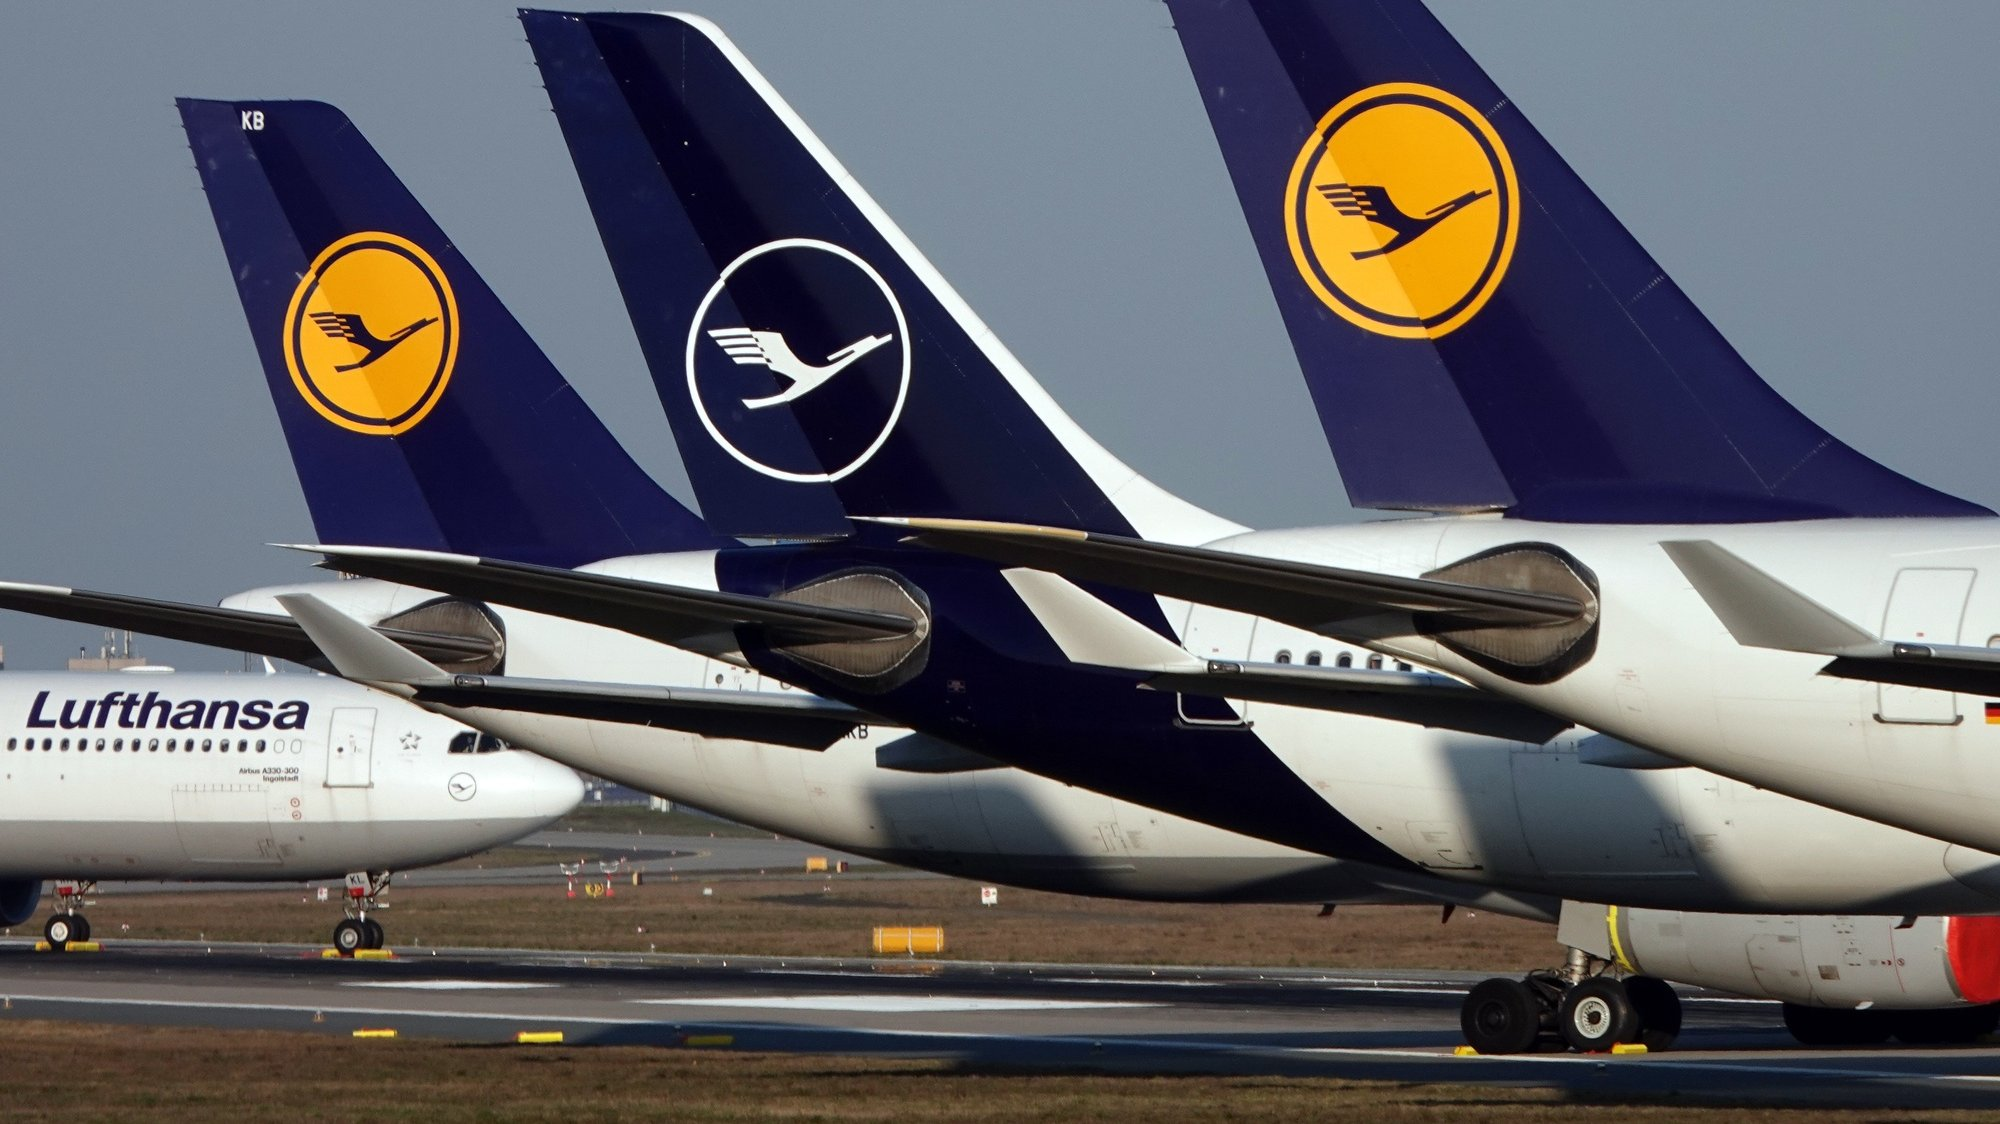 epa09050635 (FILE) Lufthansa passenger planes parked at Frankfurt airport's northern runway in Frankfurt, Germany, 25 March 2020 (reissued 04 March 2021). Lufthansa Group in a statement on 04 March 2021 reported a 5.5 billion euro operating loss in 2020, mostly due to the ongoing coronavirus Covid-19 pandemic.  EPA/MAURITZ ANTIN *** Local Caption *** 56475375